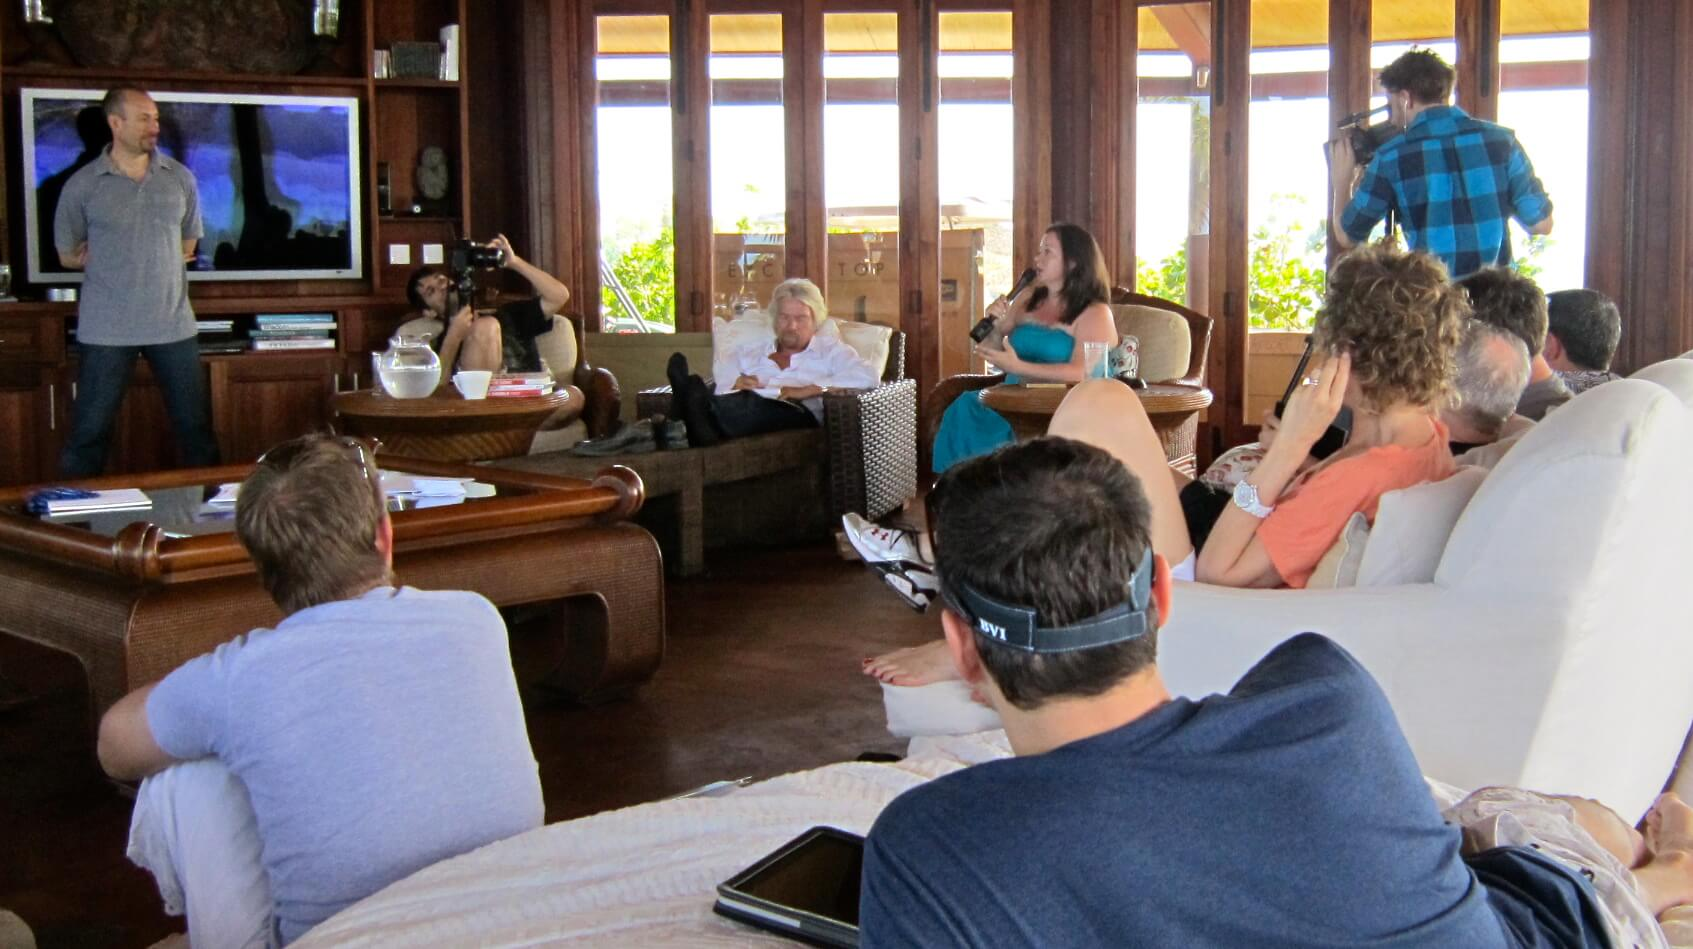 richard-branson-business-brainstorming-necker-island